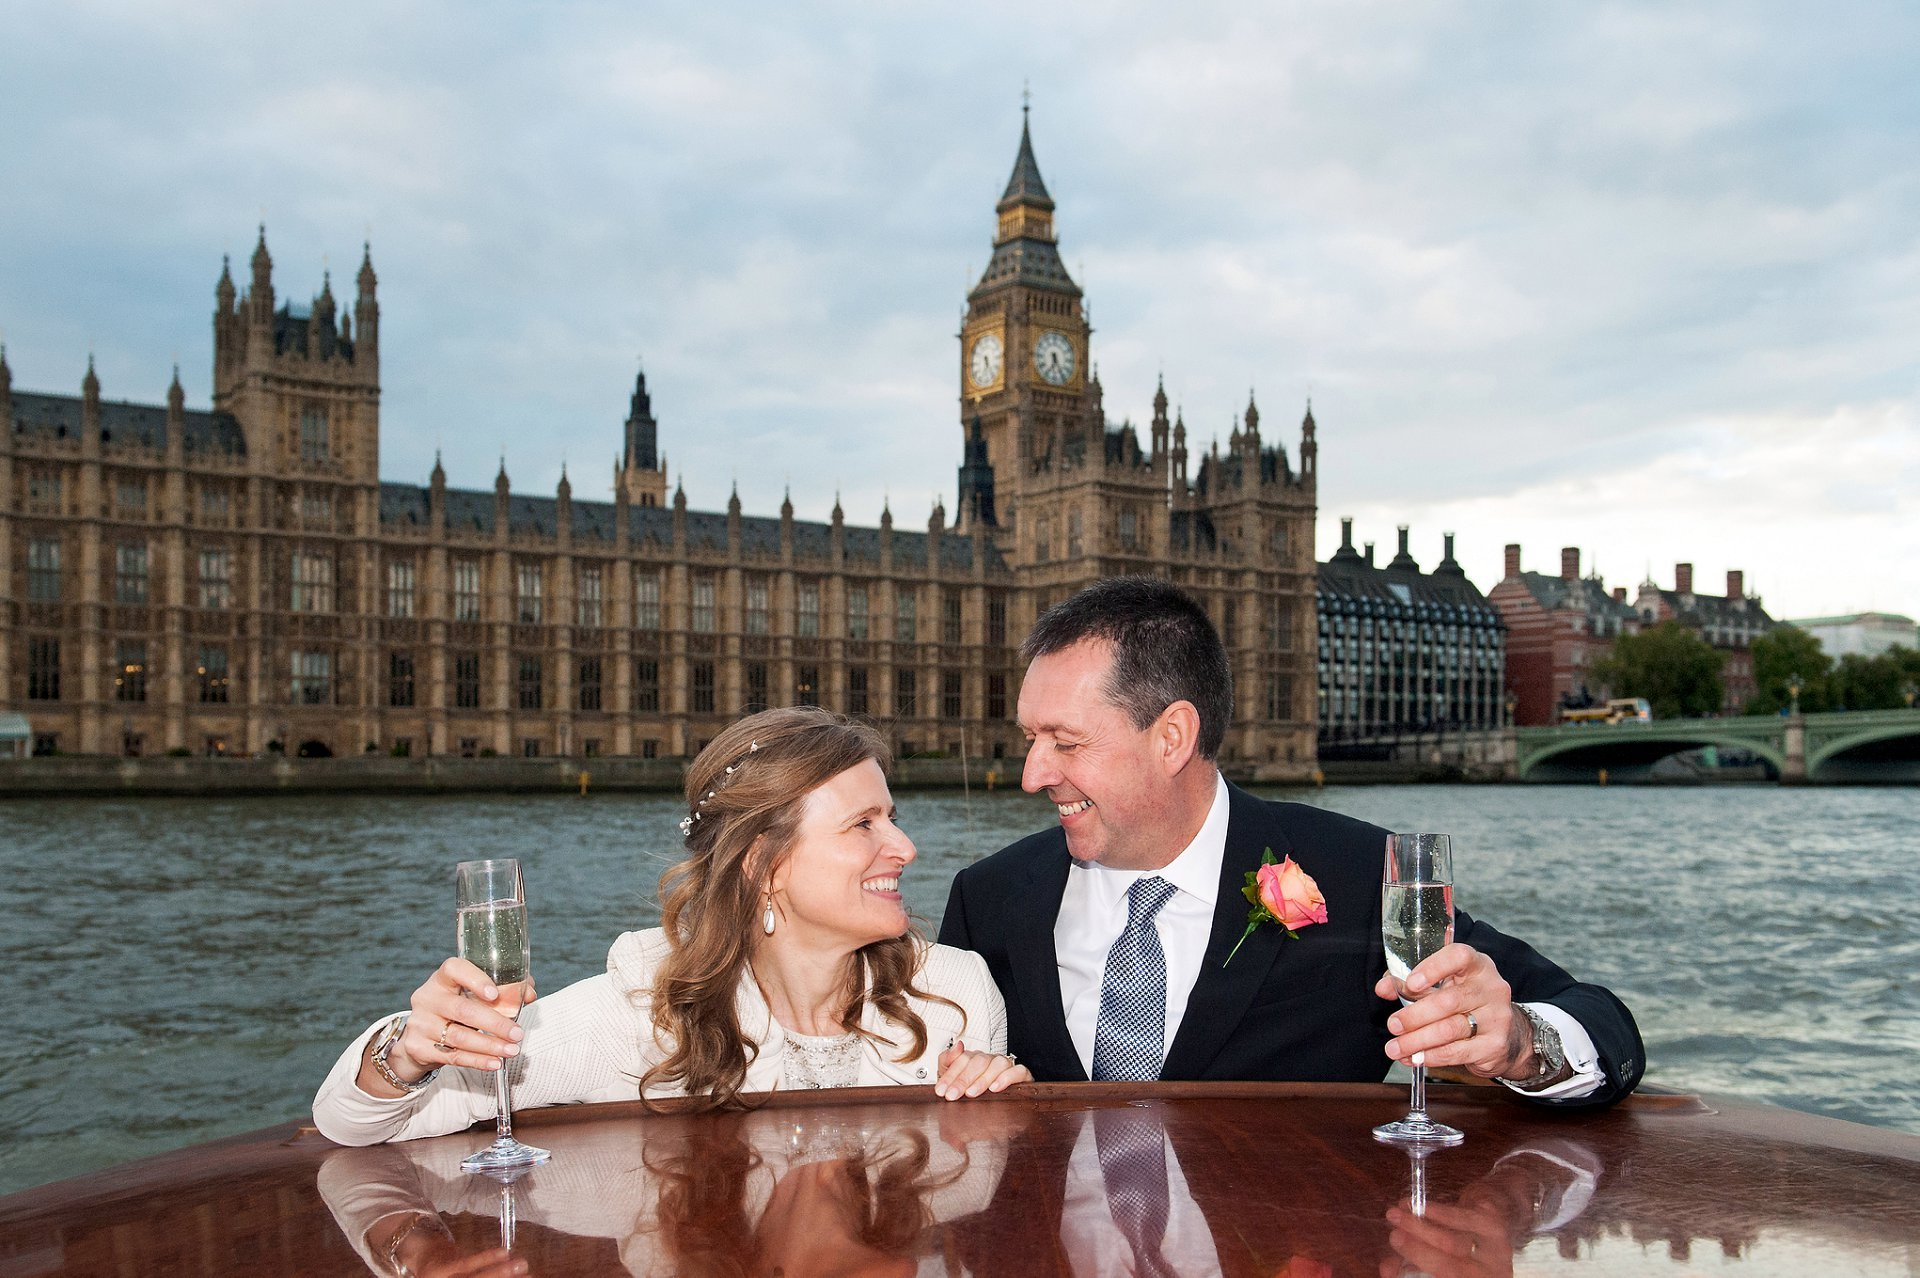 couple-champagne-wedding-day-luxury-romantic-cruise-thames-limo-bespoke-london-charter-houses-of-parliament-big-ben-emma-duggan